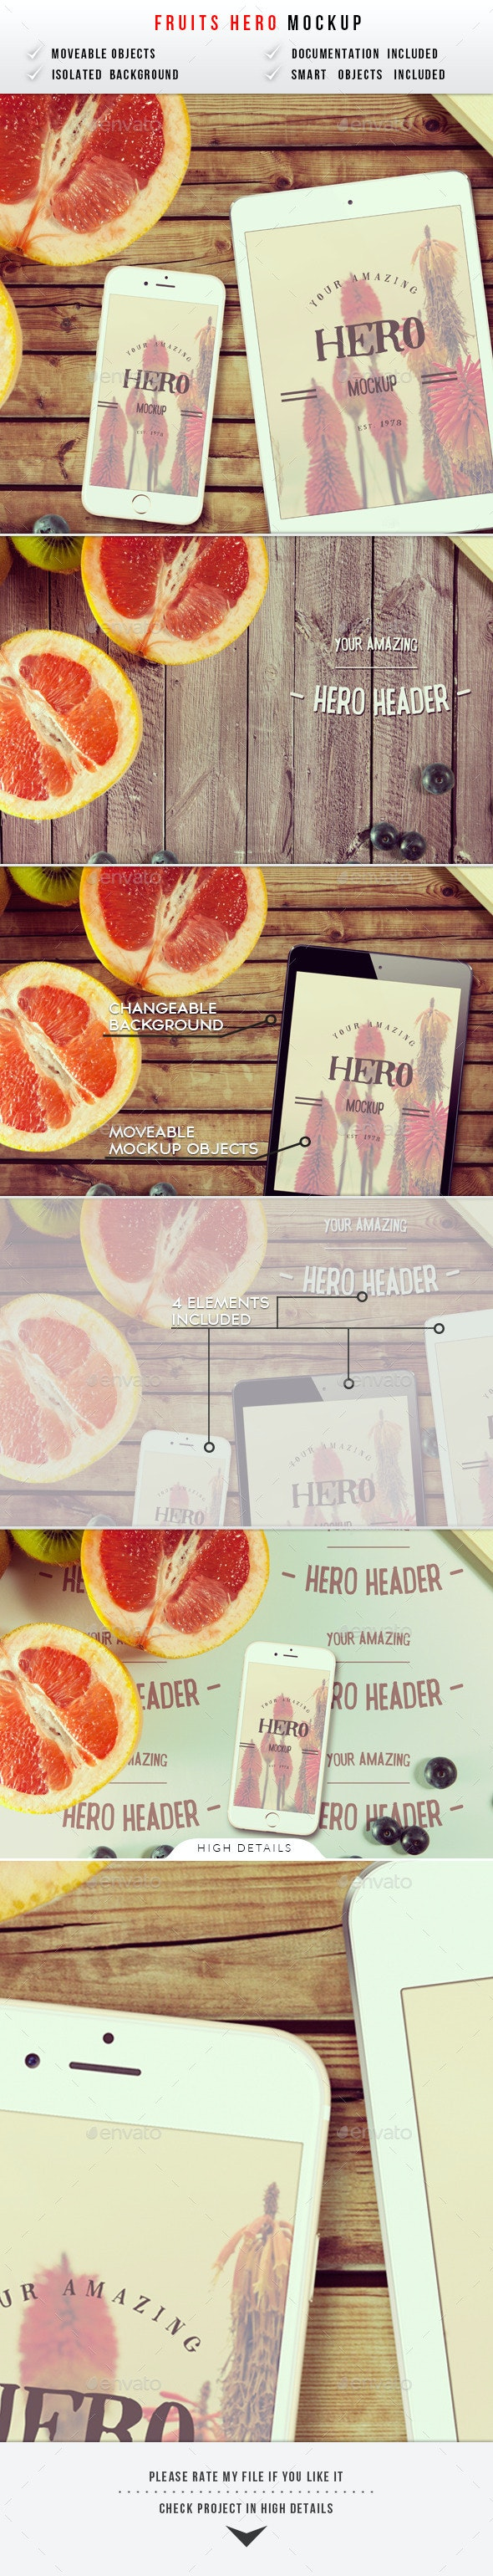 Fruits Hero Header Mockup - Hero Images Graphics